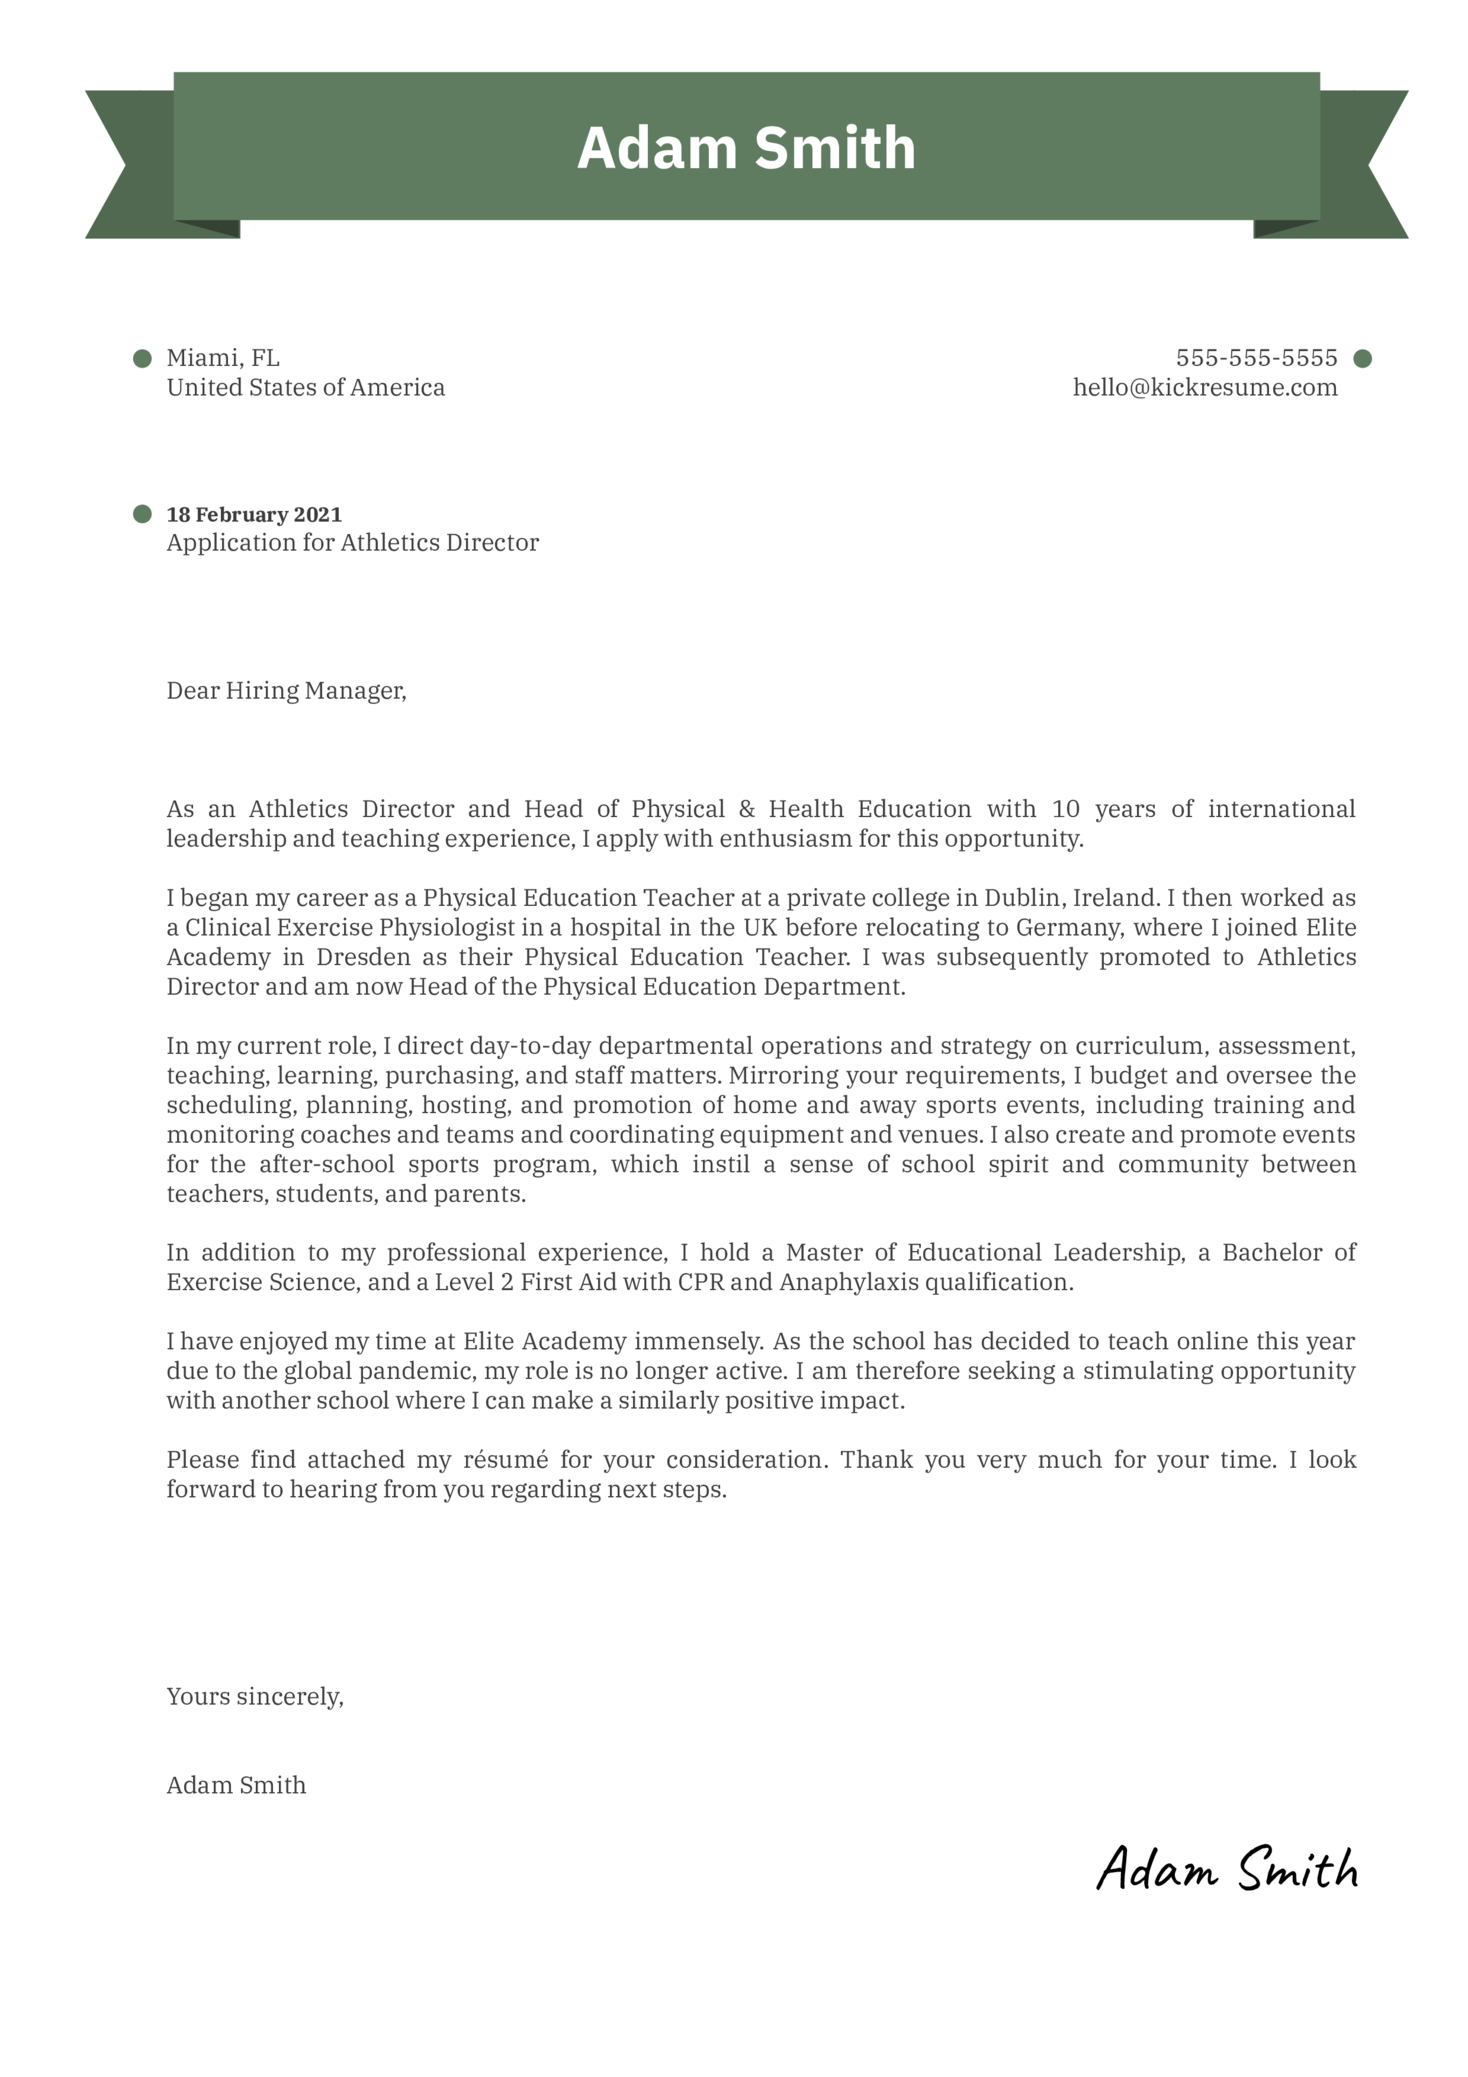 Athletics Director Cover Letter Example